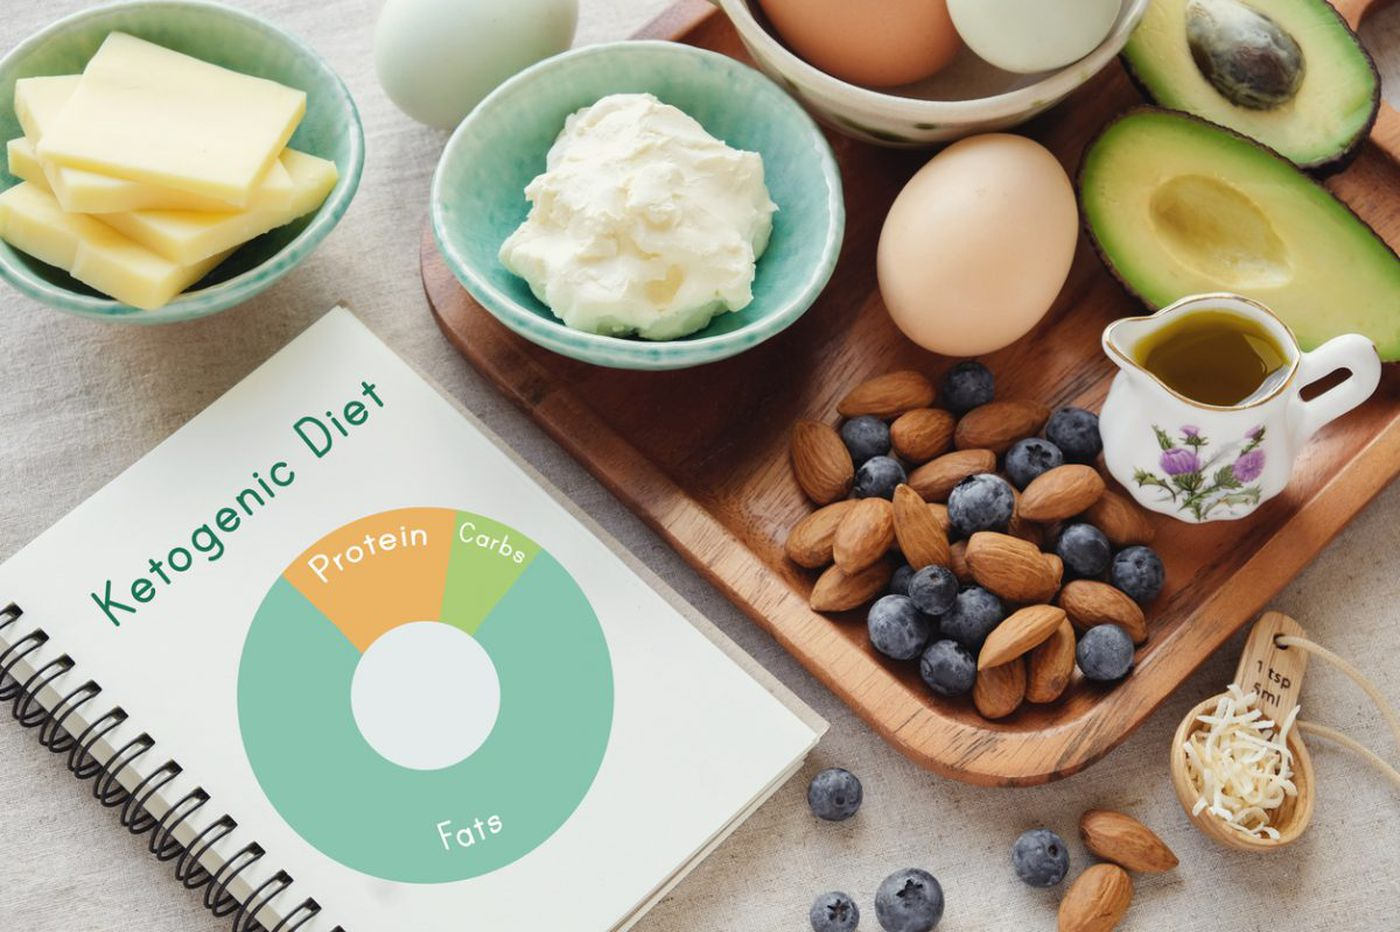 A dietitian weighs in on the Ketogenic diet for weight loss